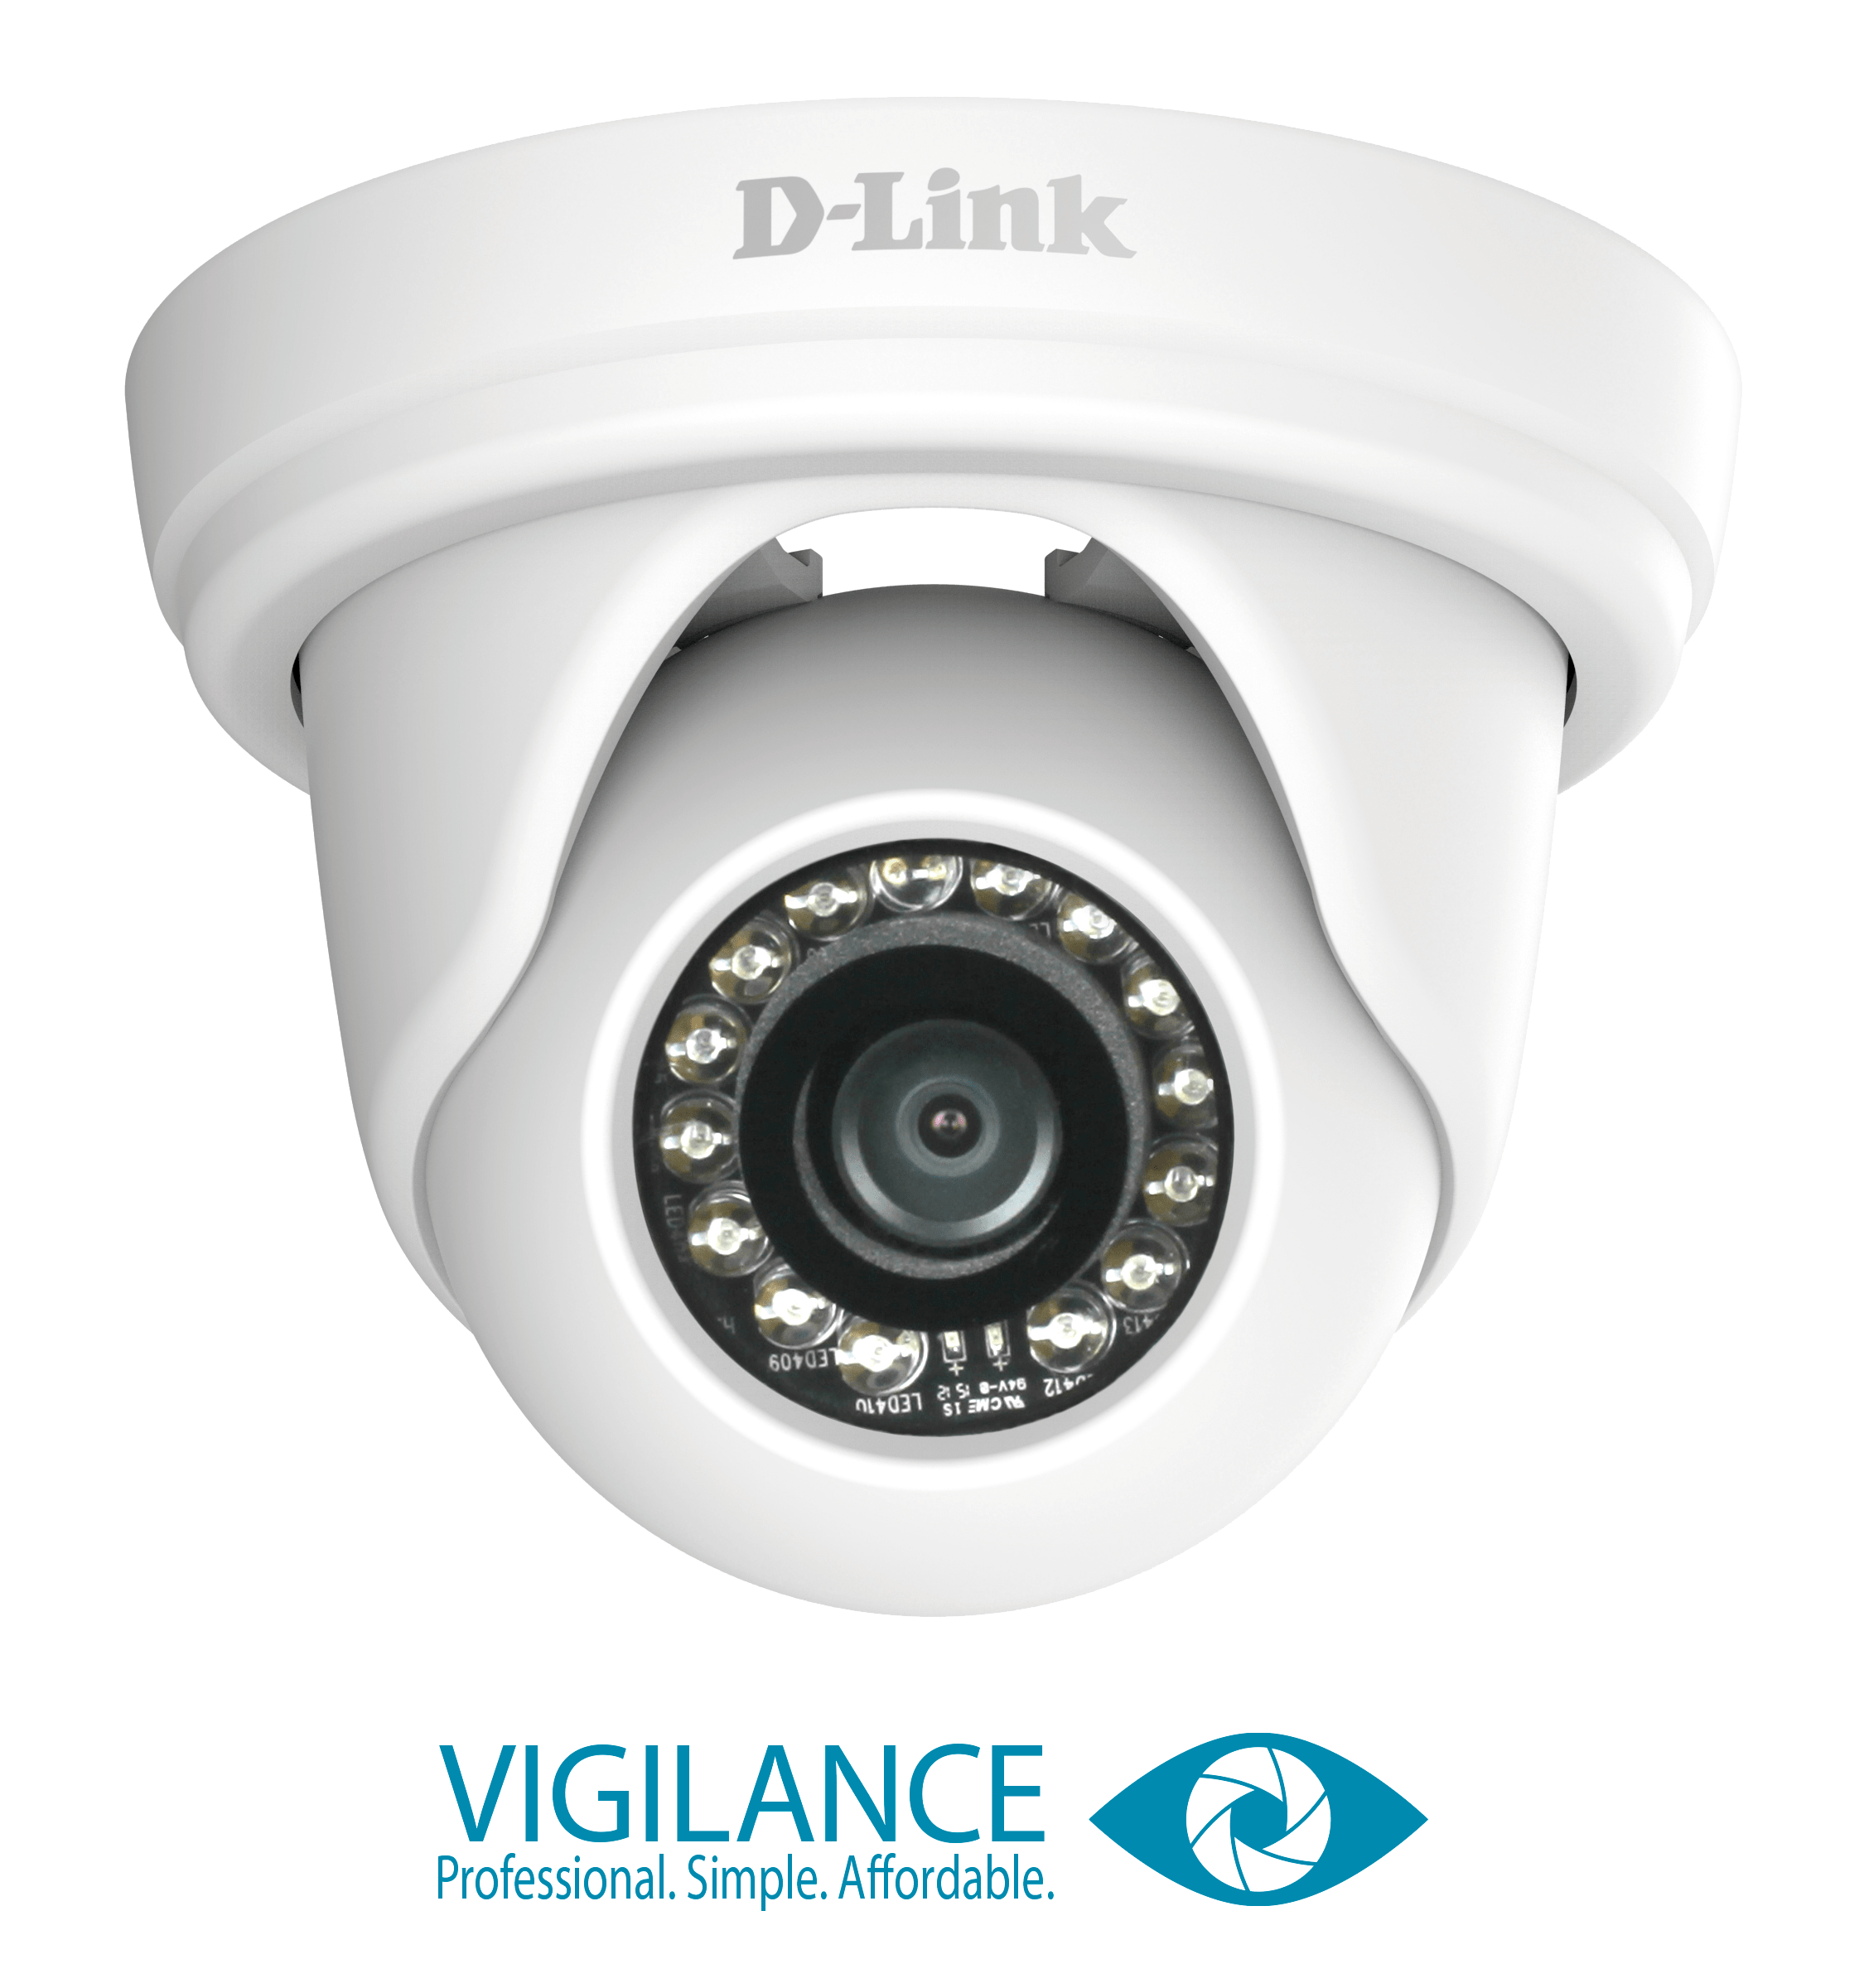 Wireless Security Surveillance Camera Systems